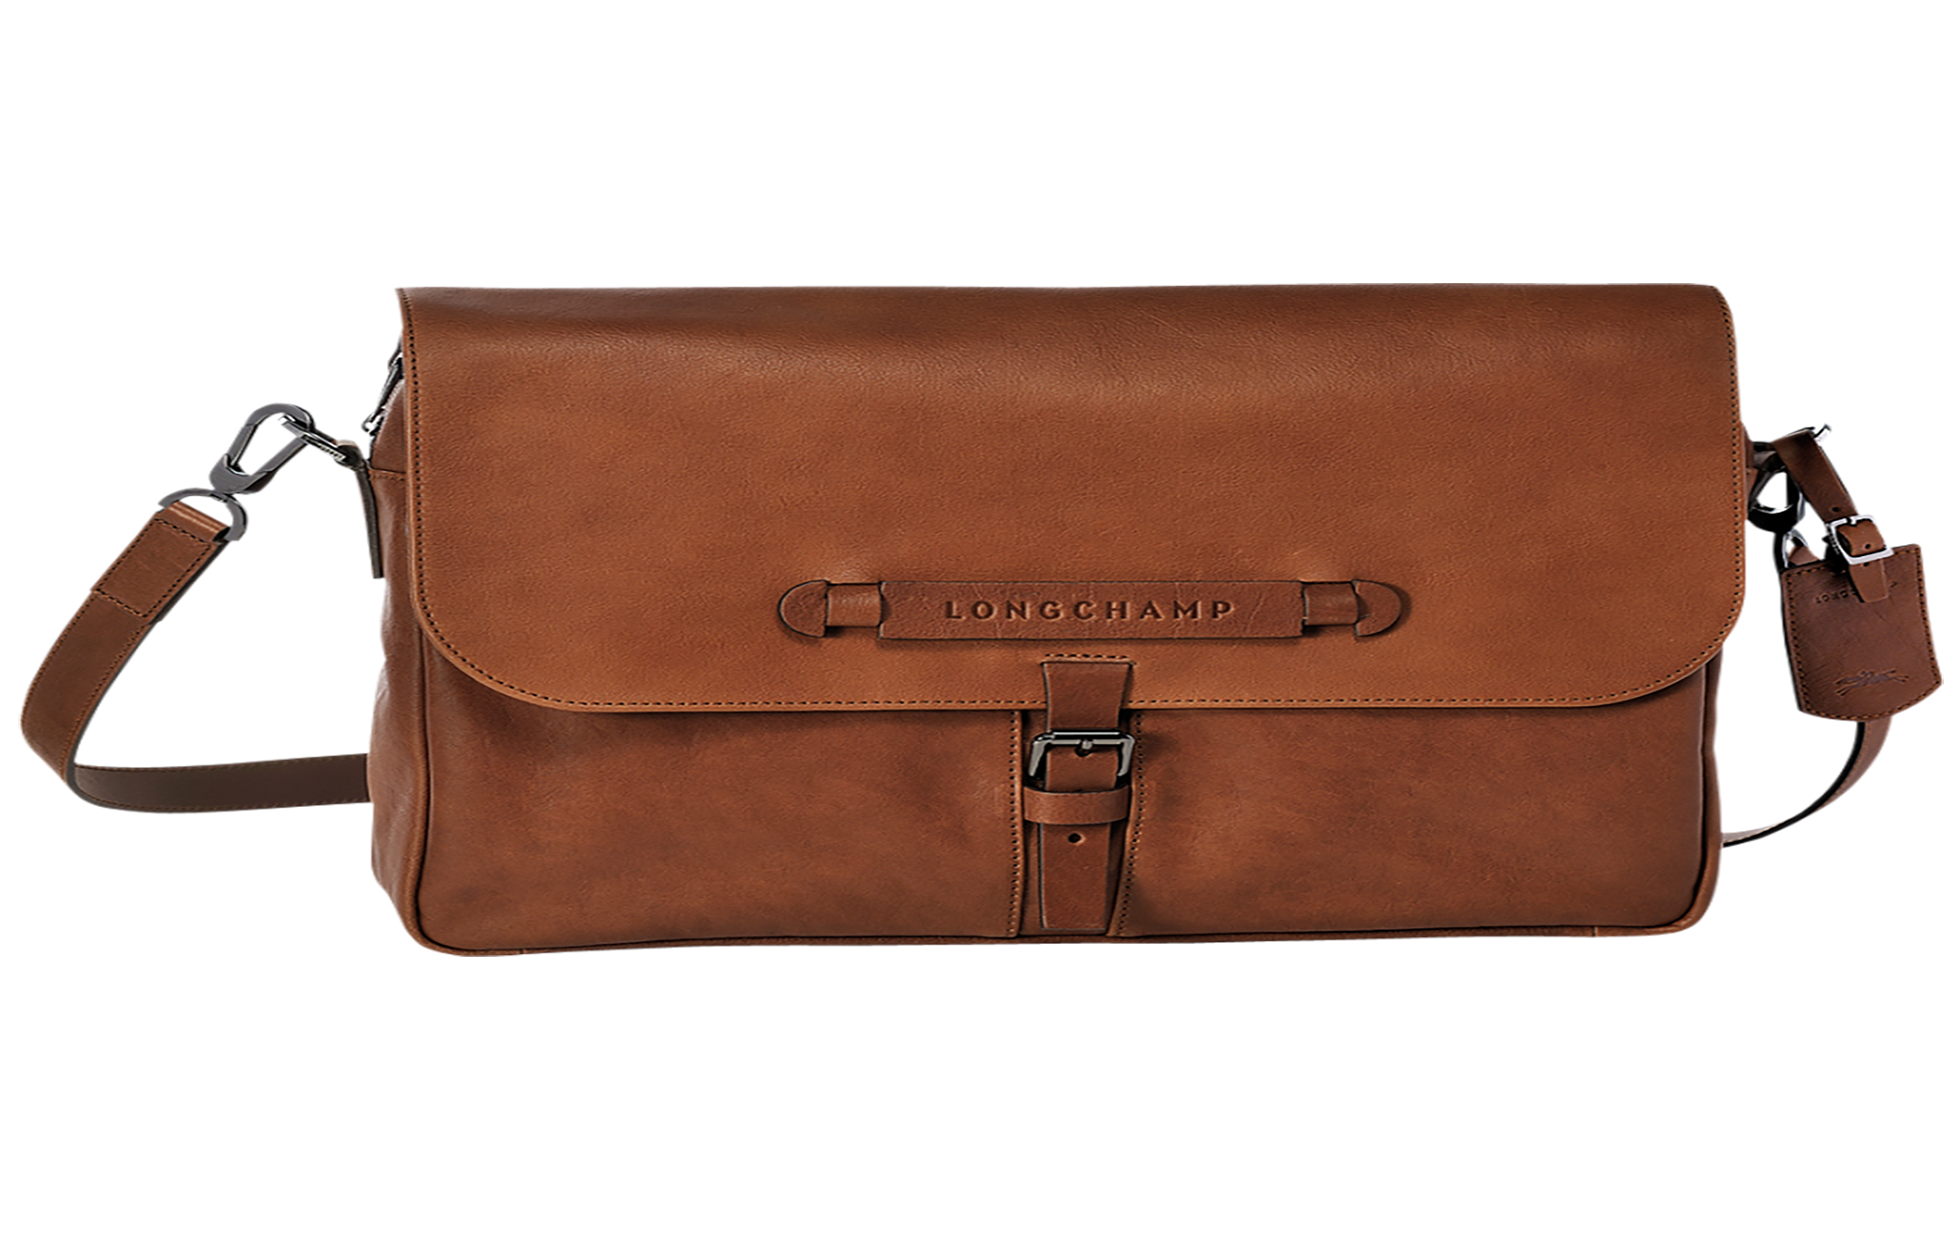 longchamp_briefcase_longchamp_3d_2127770504_0